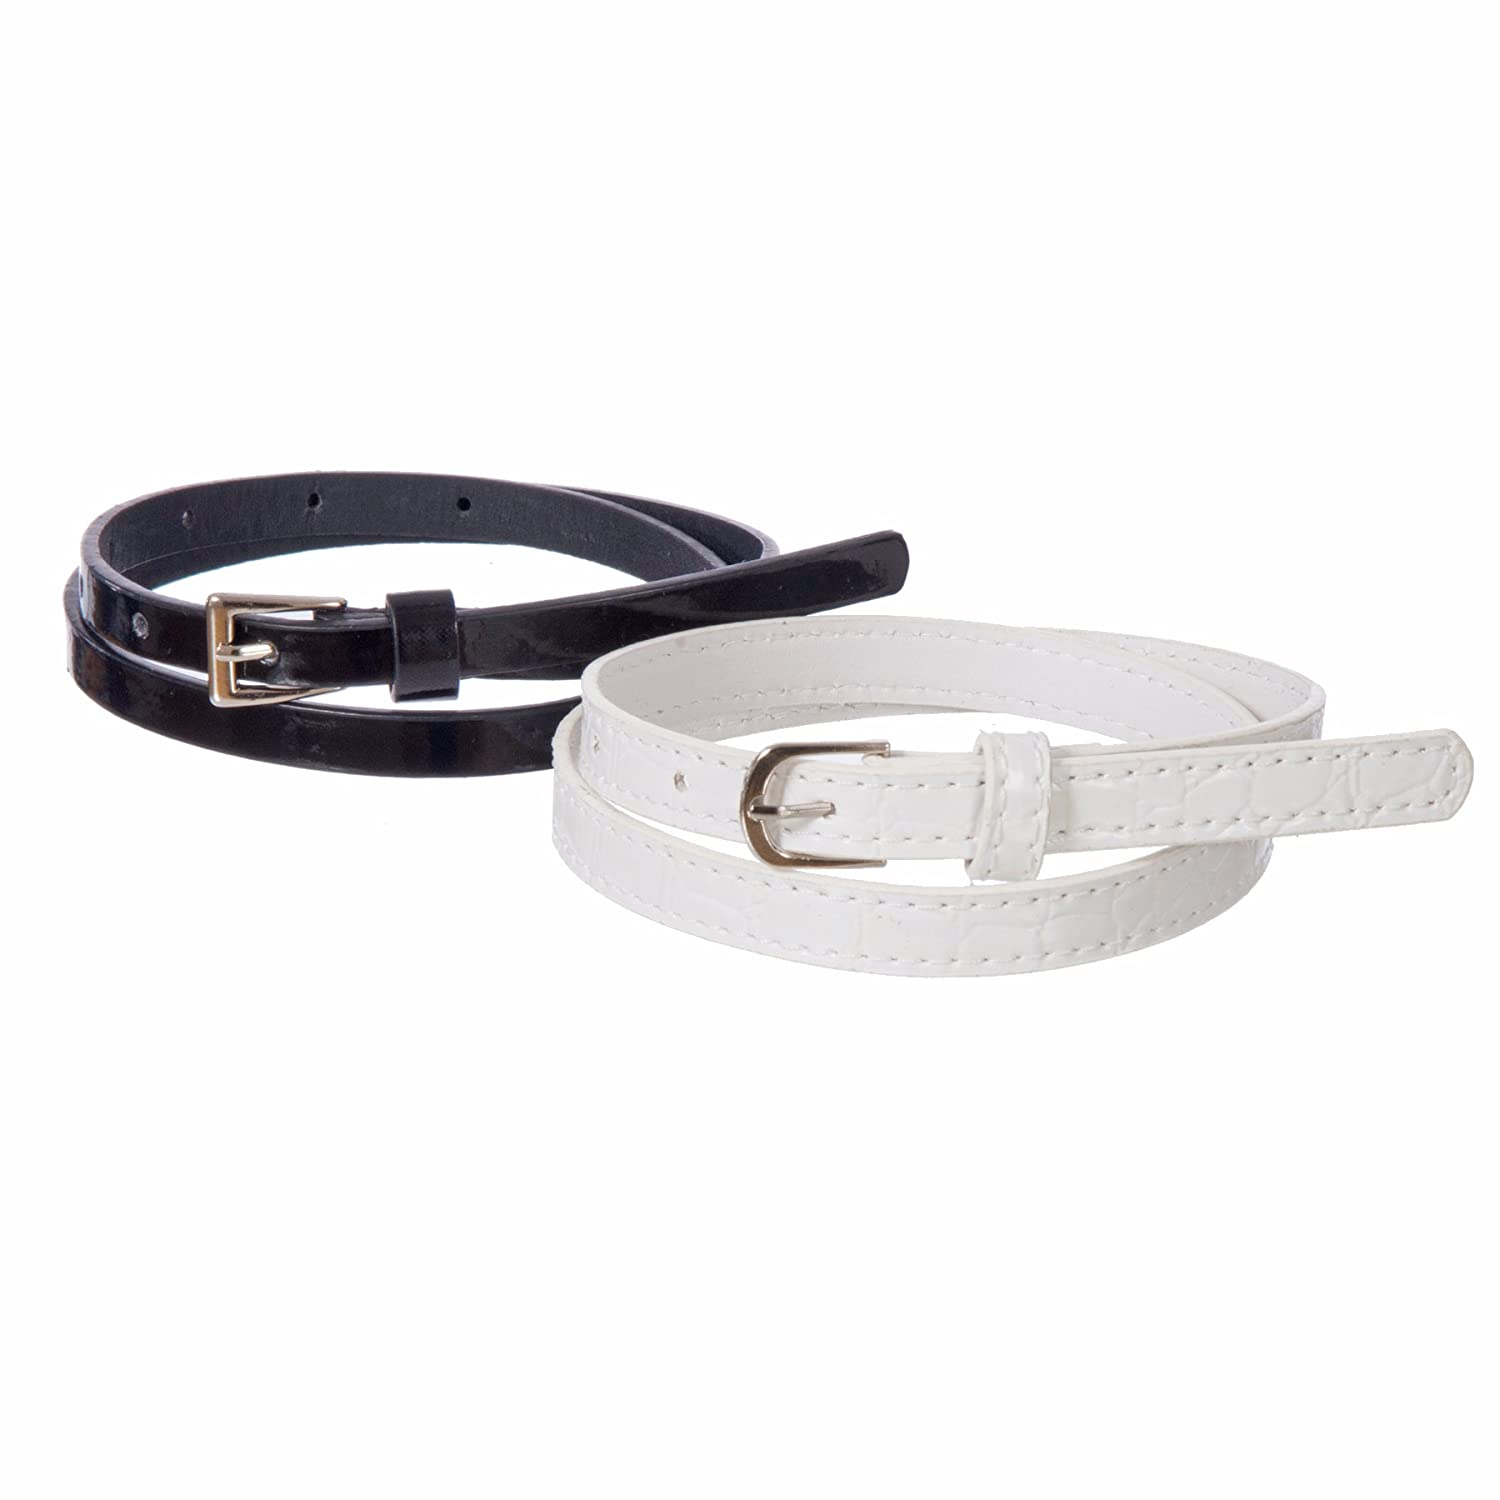 Sunny Belt Girl's 2-for-1 Shiny Black & White Skinny Belt KDC_SUN4_KIDS_12_BLKWHT_M